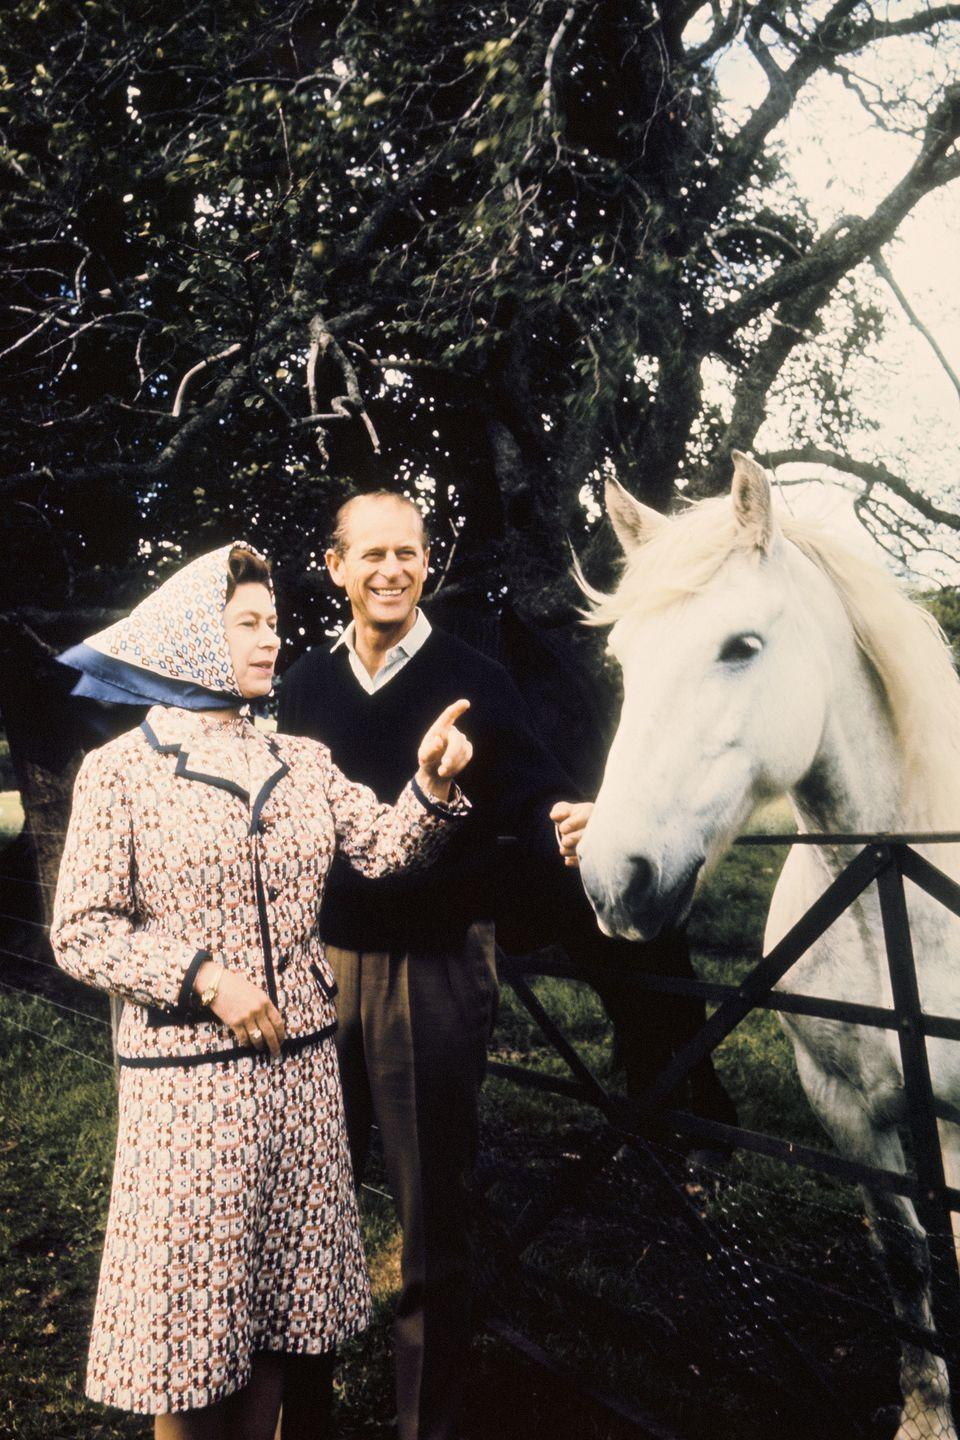 <p>Queen Elizabeth and Prince Philip take a walk and interact with a horse on their grounds. </p>